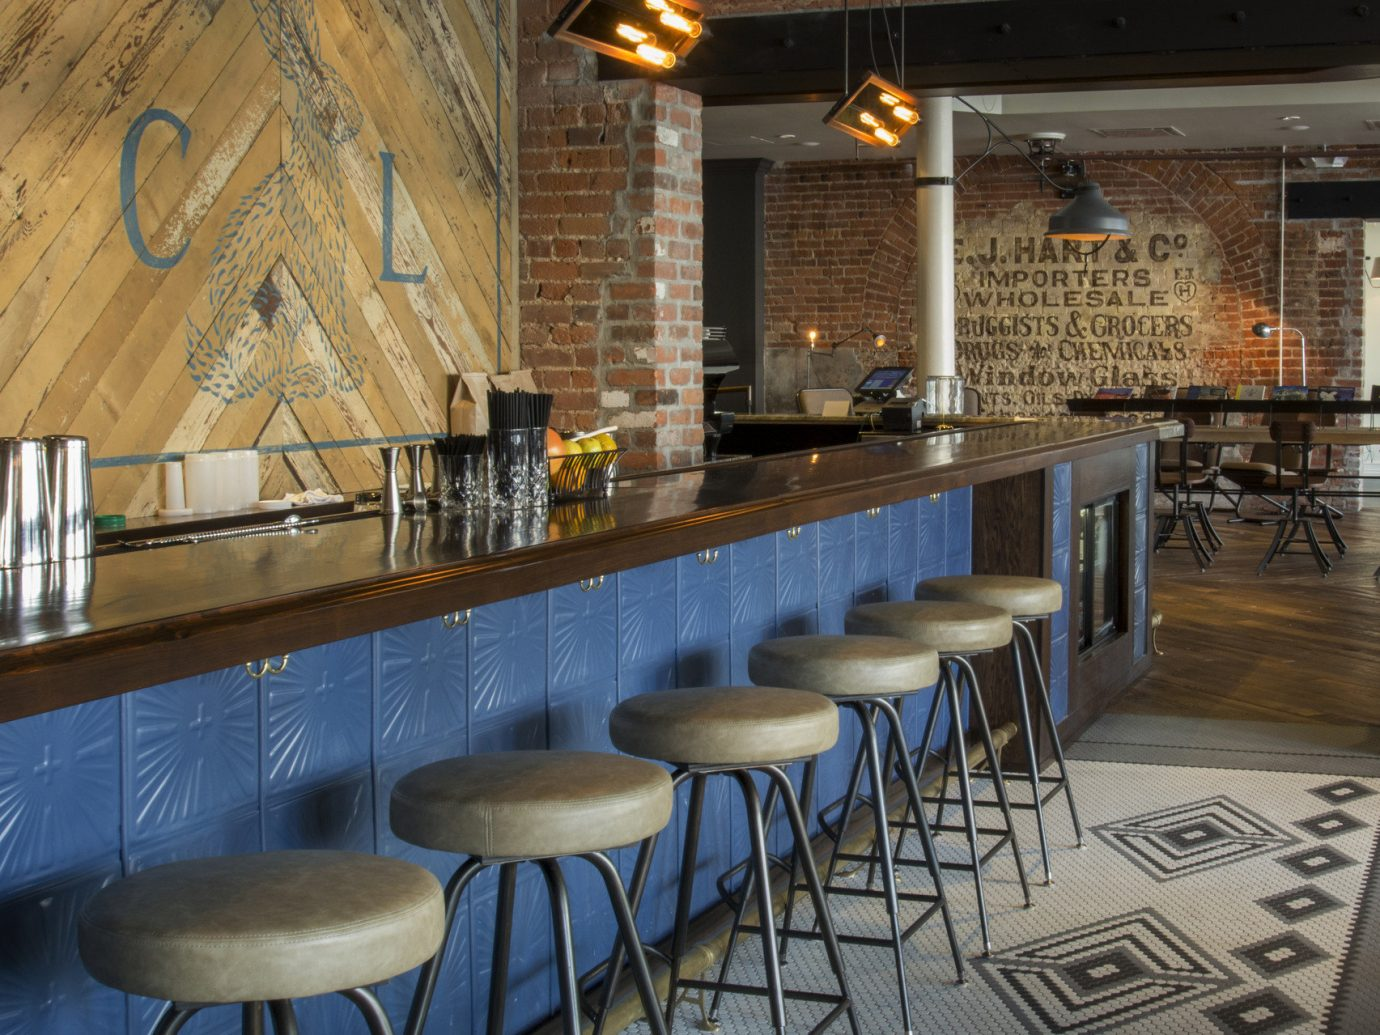 Bar bar seating Boutique Hotels brick wall Dining Hip Hotels industrial interior restaurant Rustic tables trendy Trip Ideas urban floor indoor chair room property dining room interior design estate meal cuisine area furniture